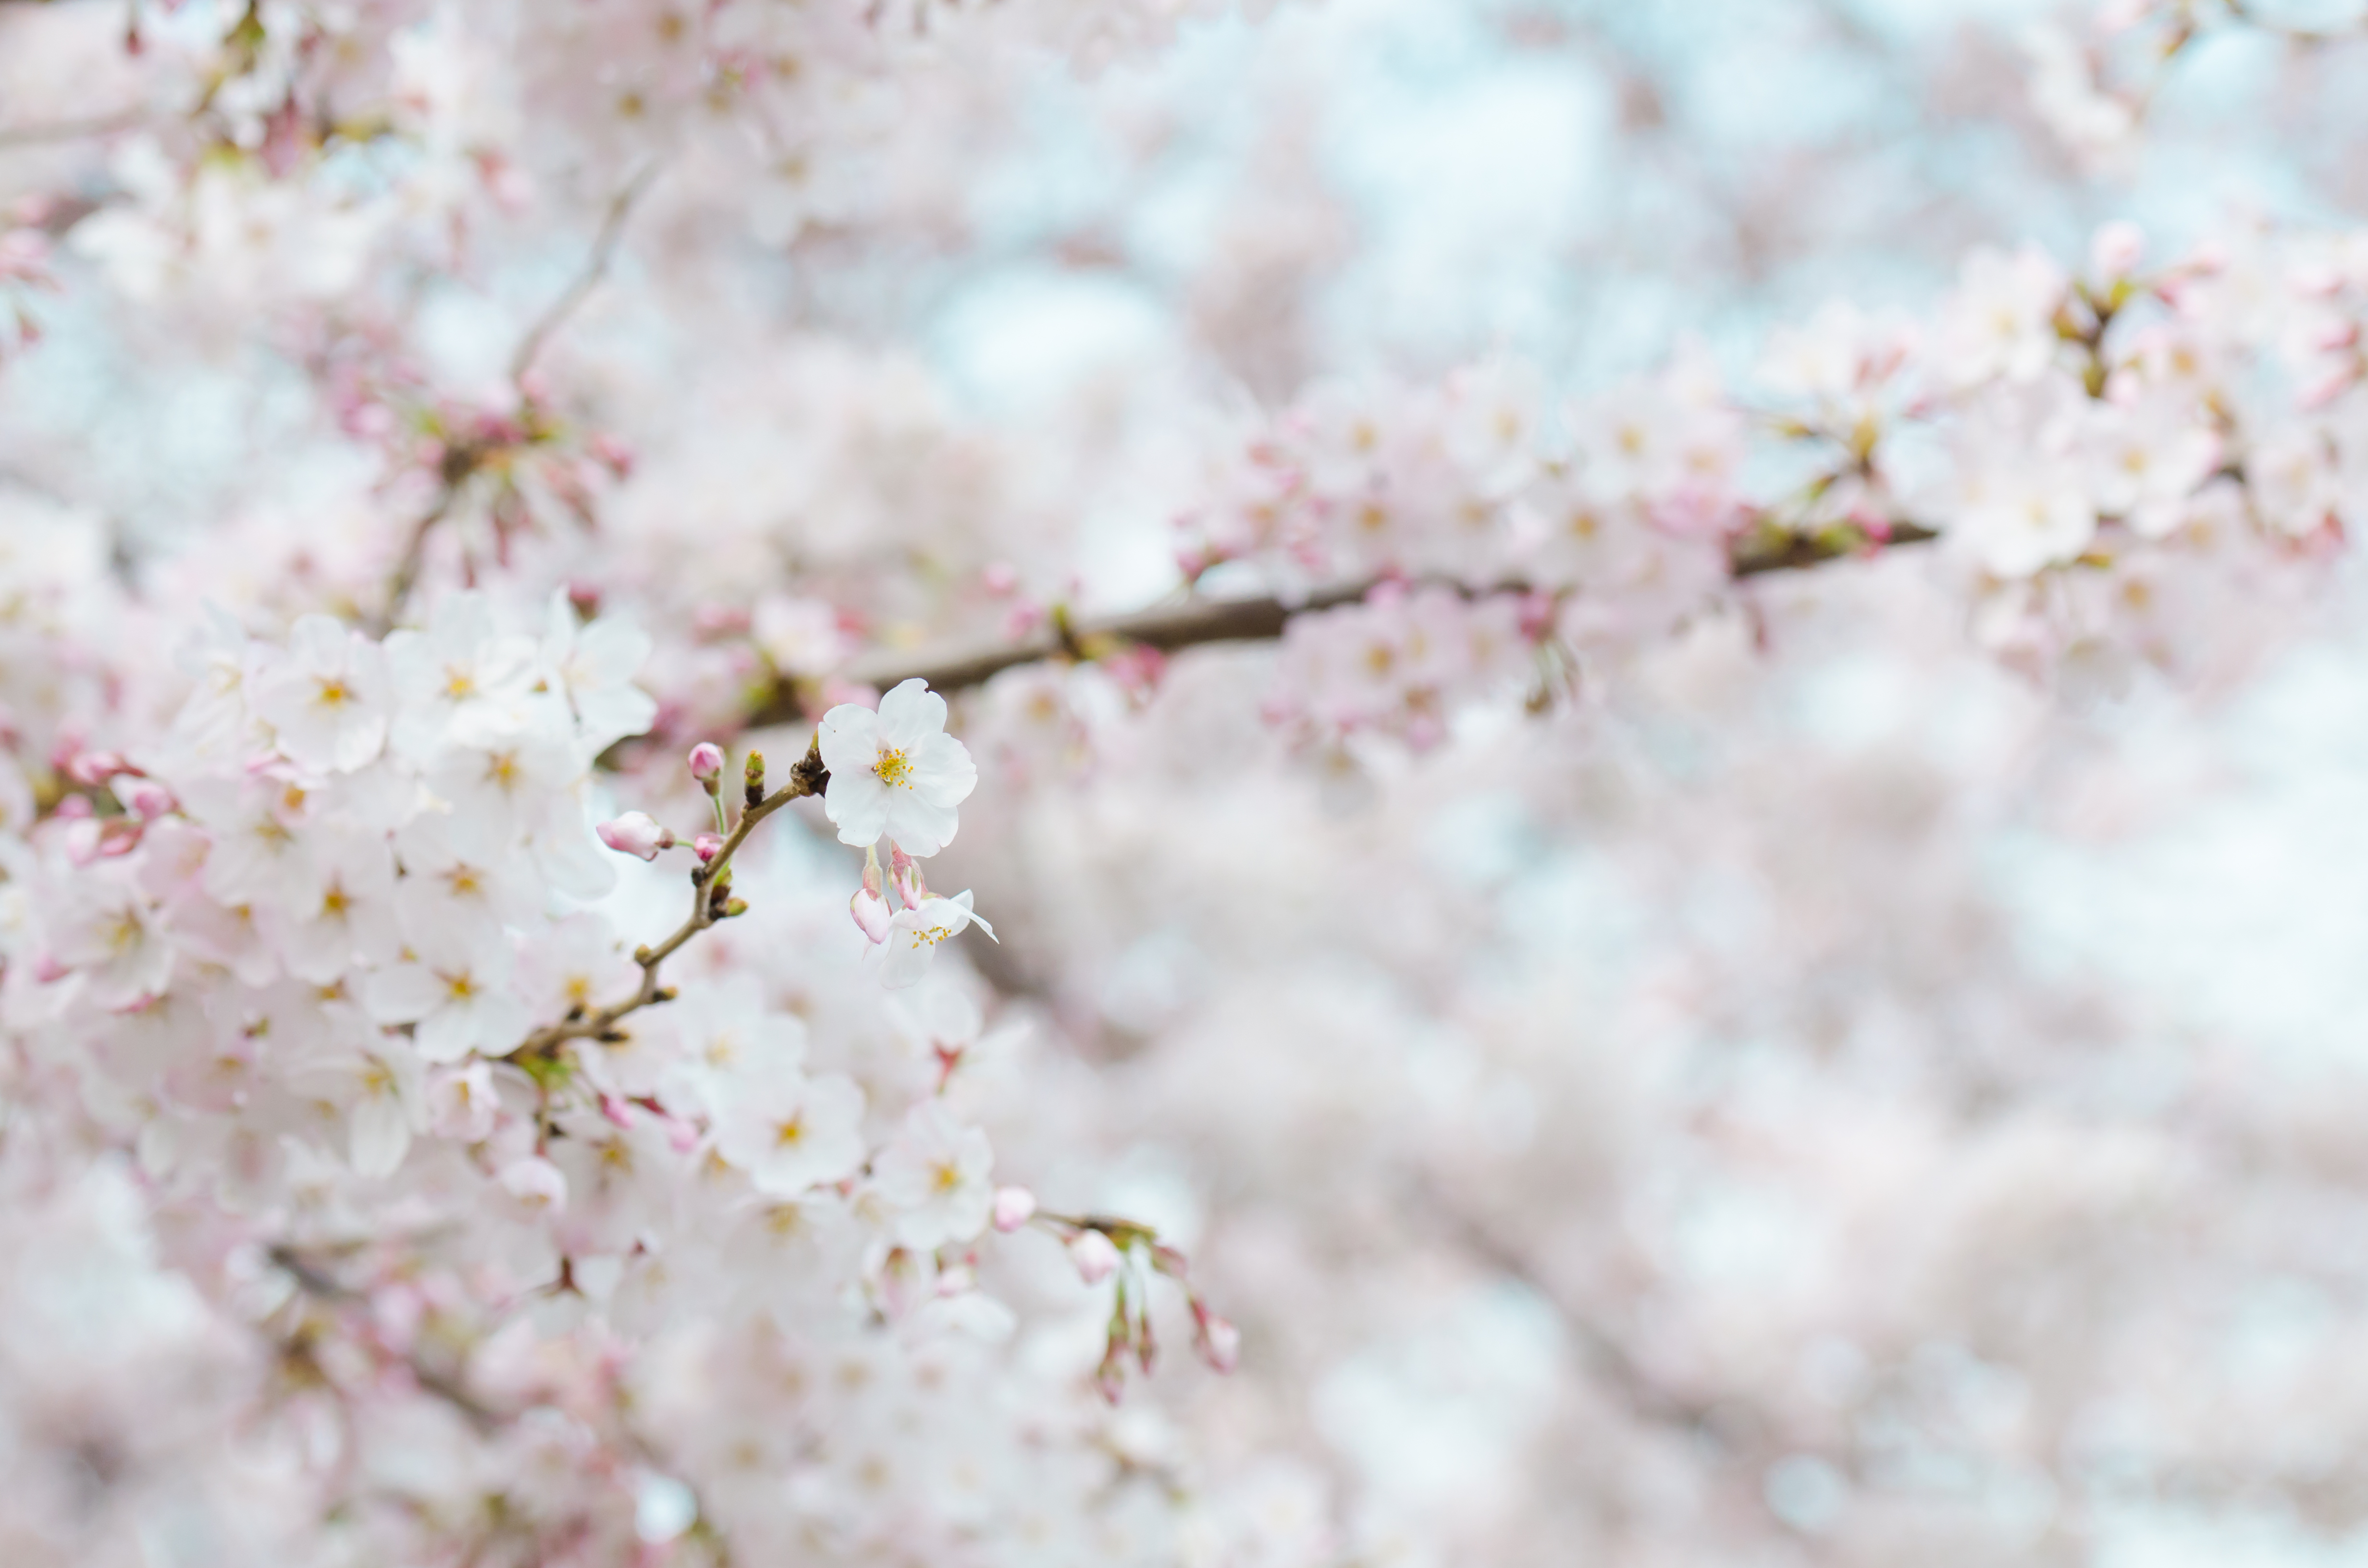 Cherry Blossom Tree Pink Flowers Free Stock Photo Of Nature, Flowers,  Winter, Spring